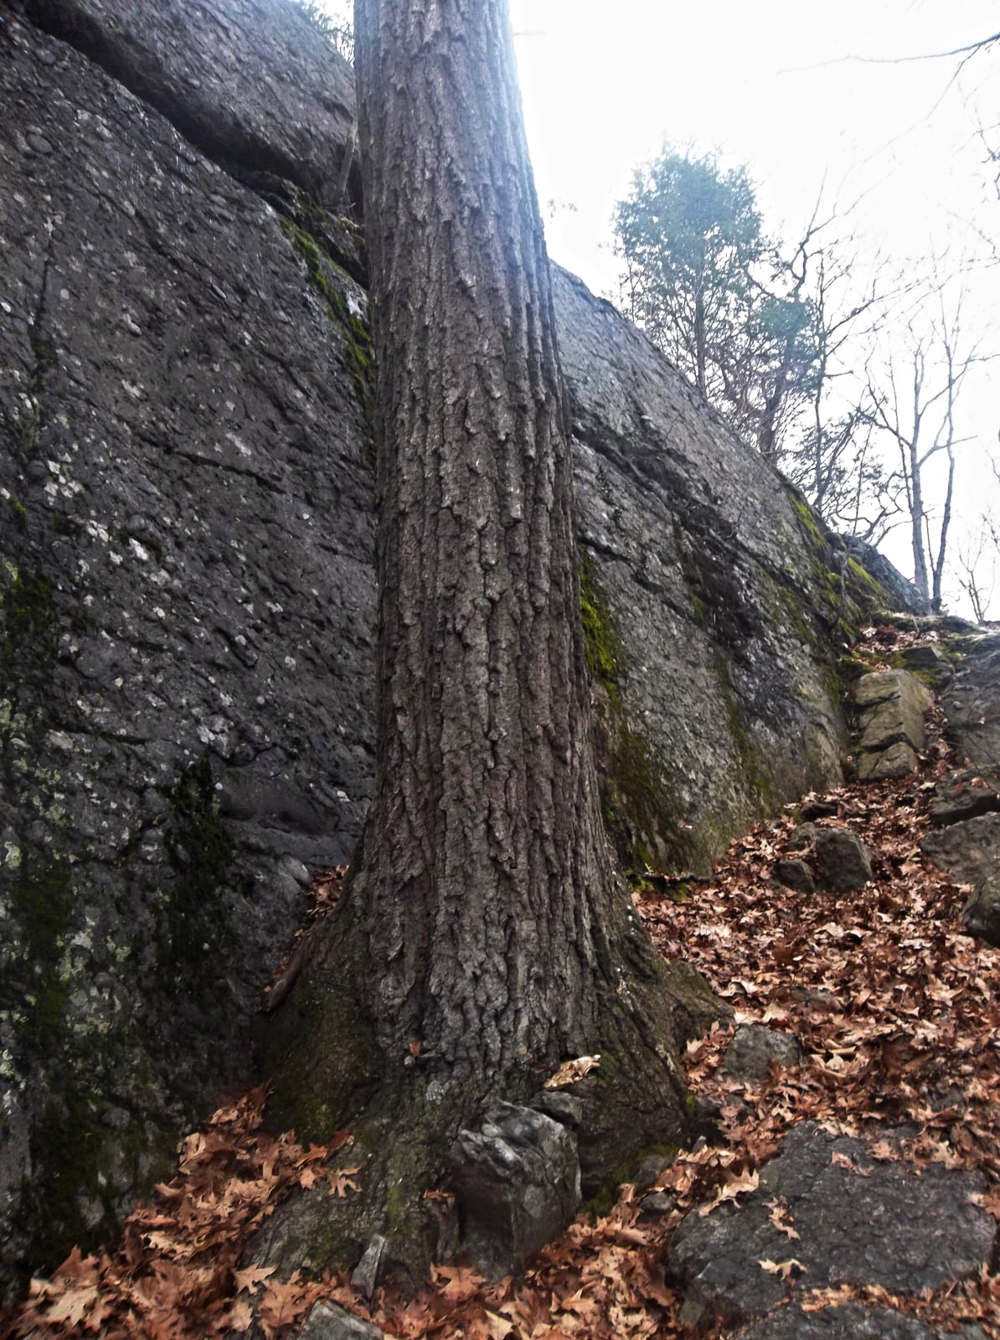 Way to the top! How long has that tree been growing there? And how can anything grow on the surface of a rock? Michelle Geffken, 2014